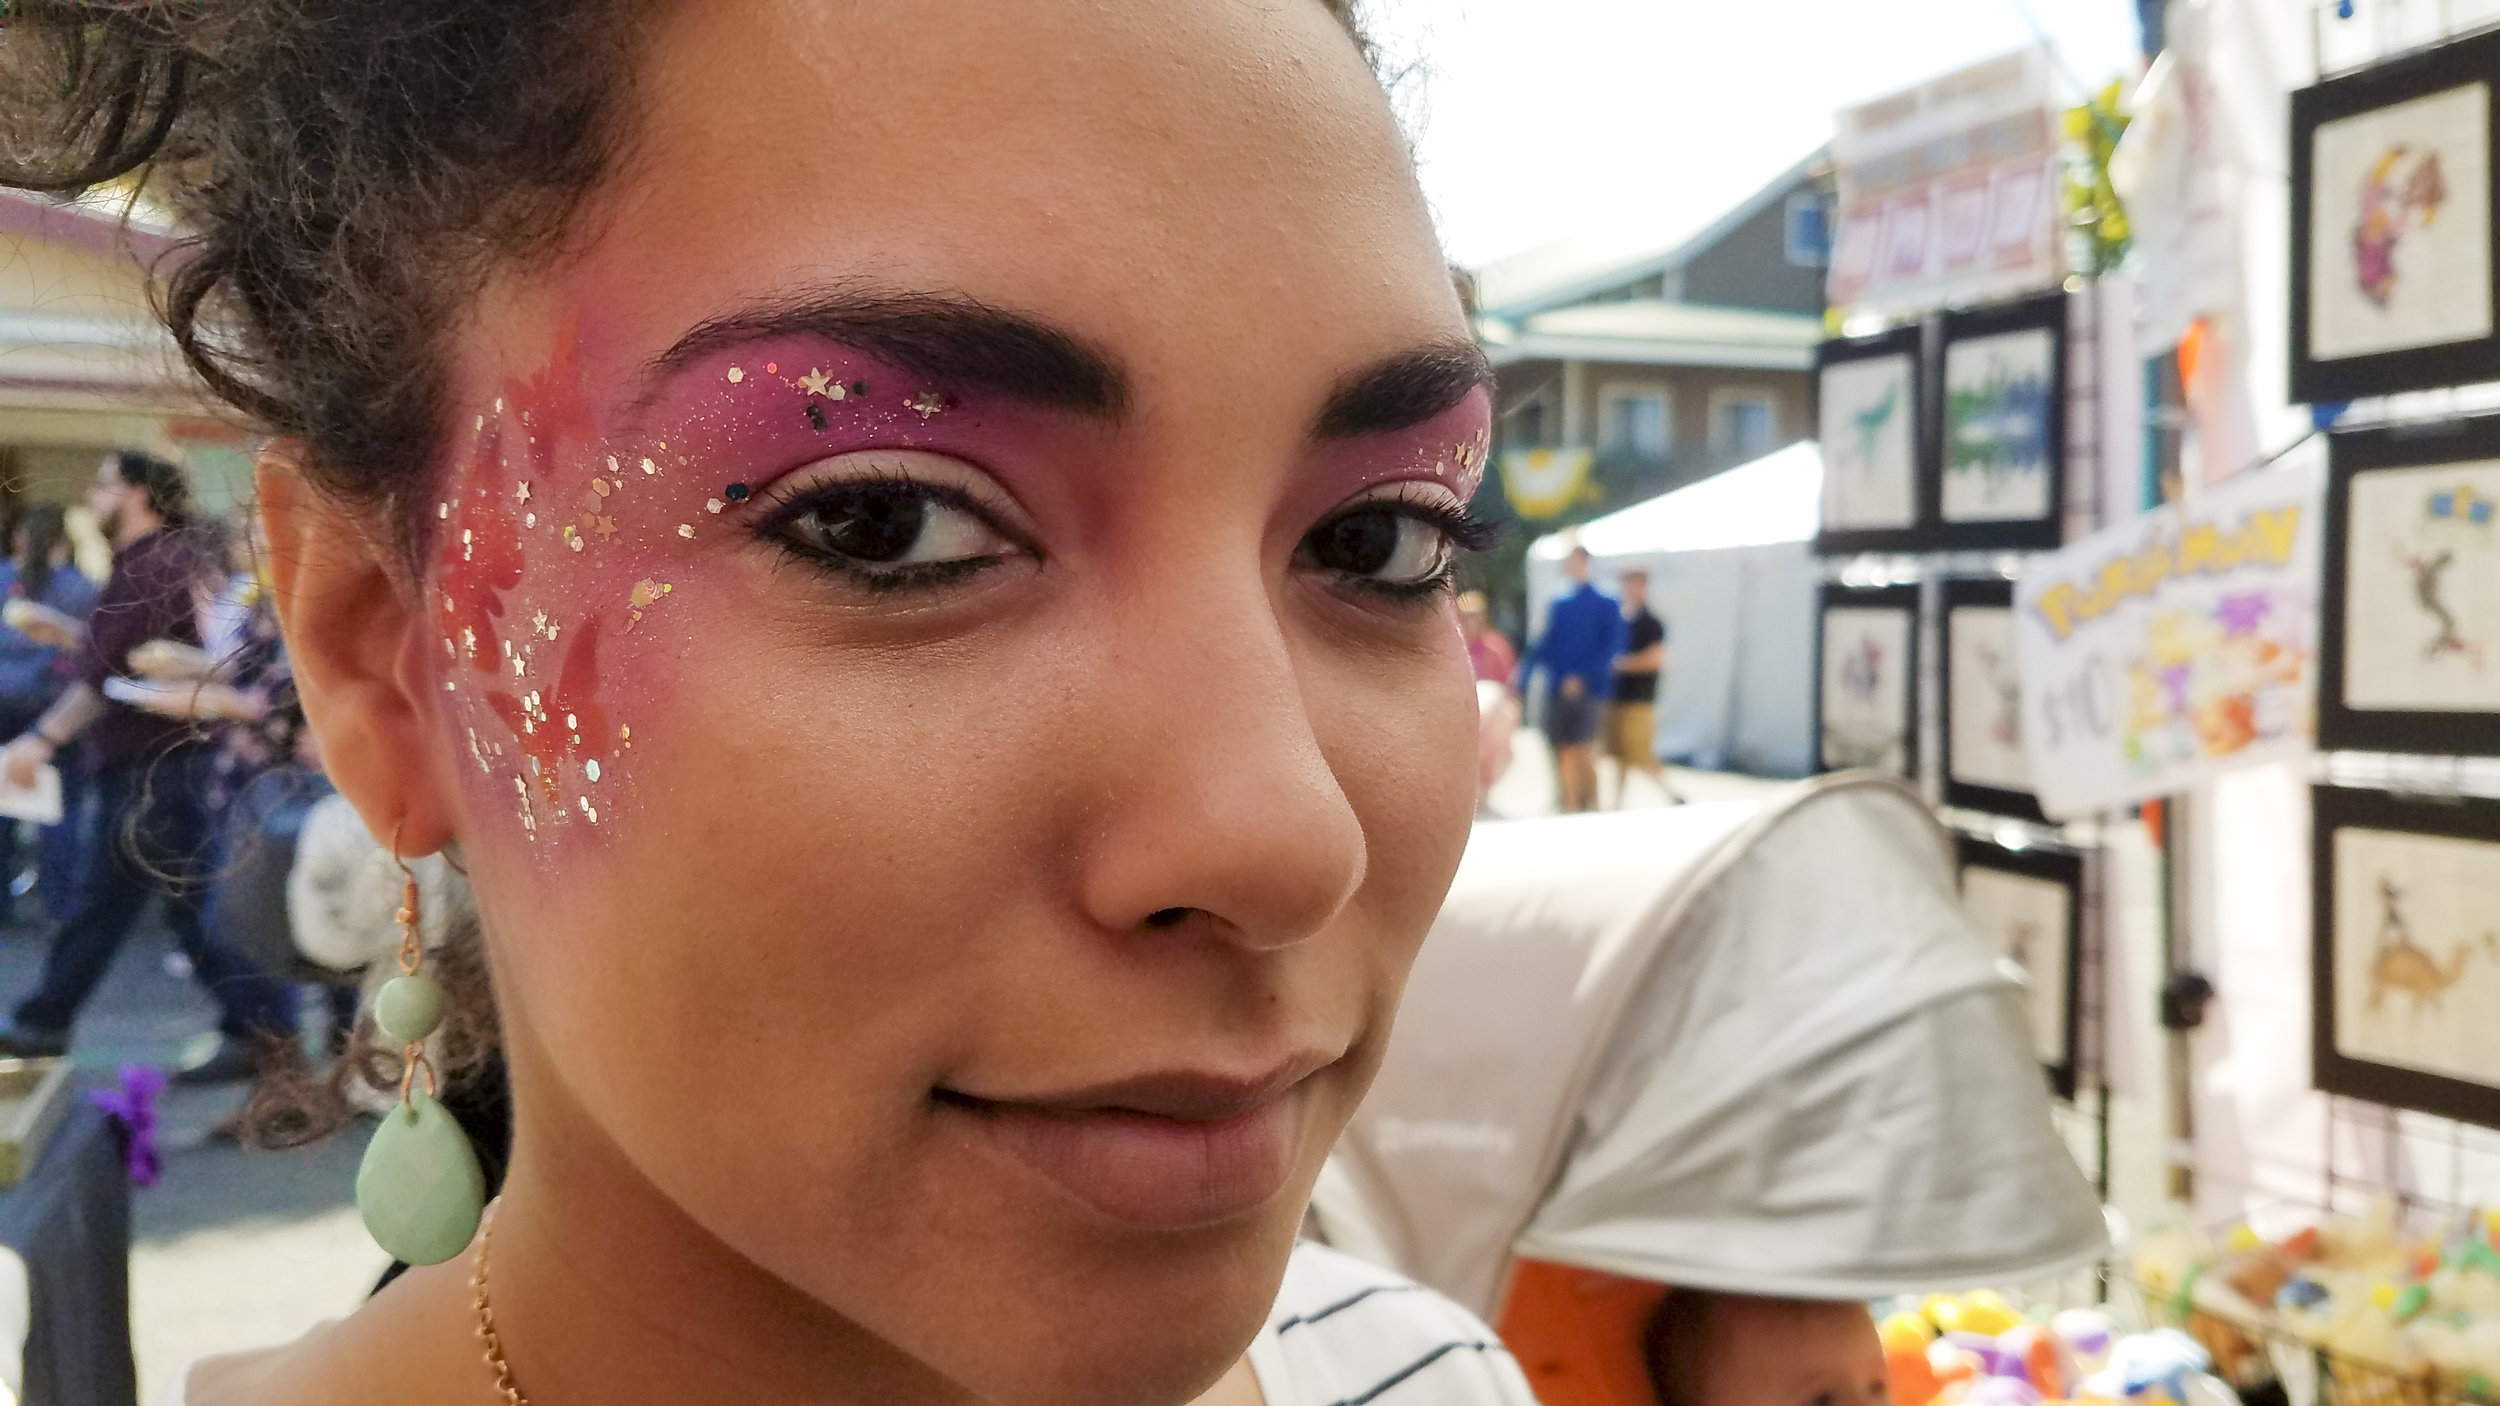 Face painting 14.jpg